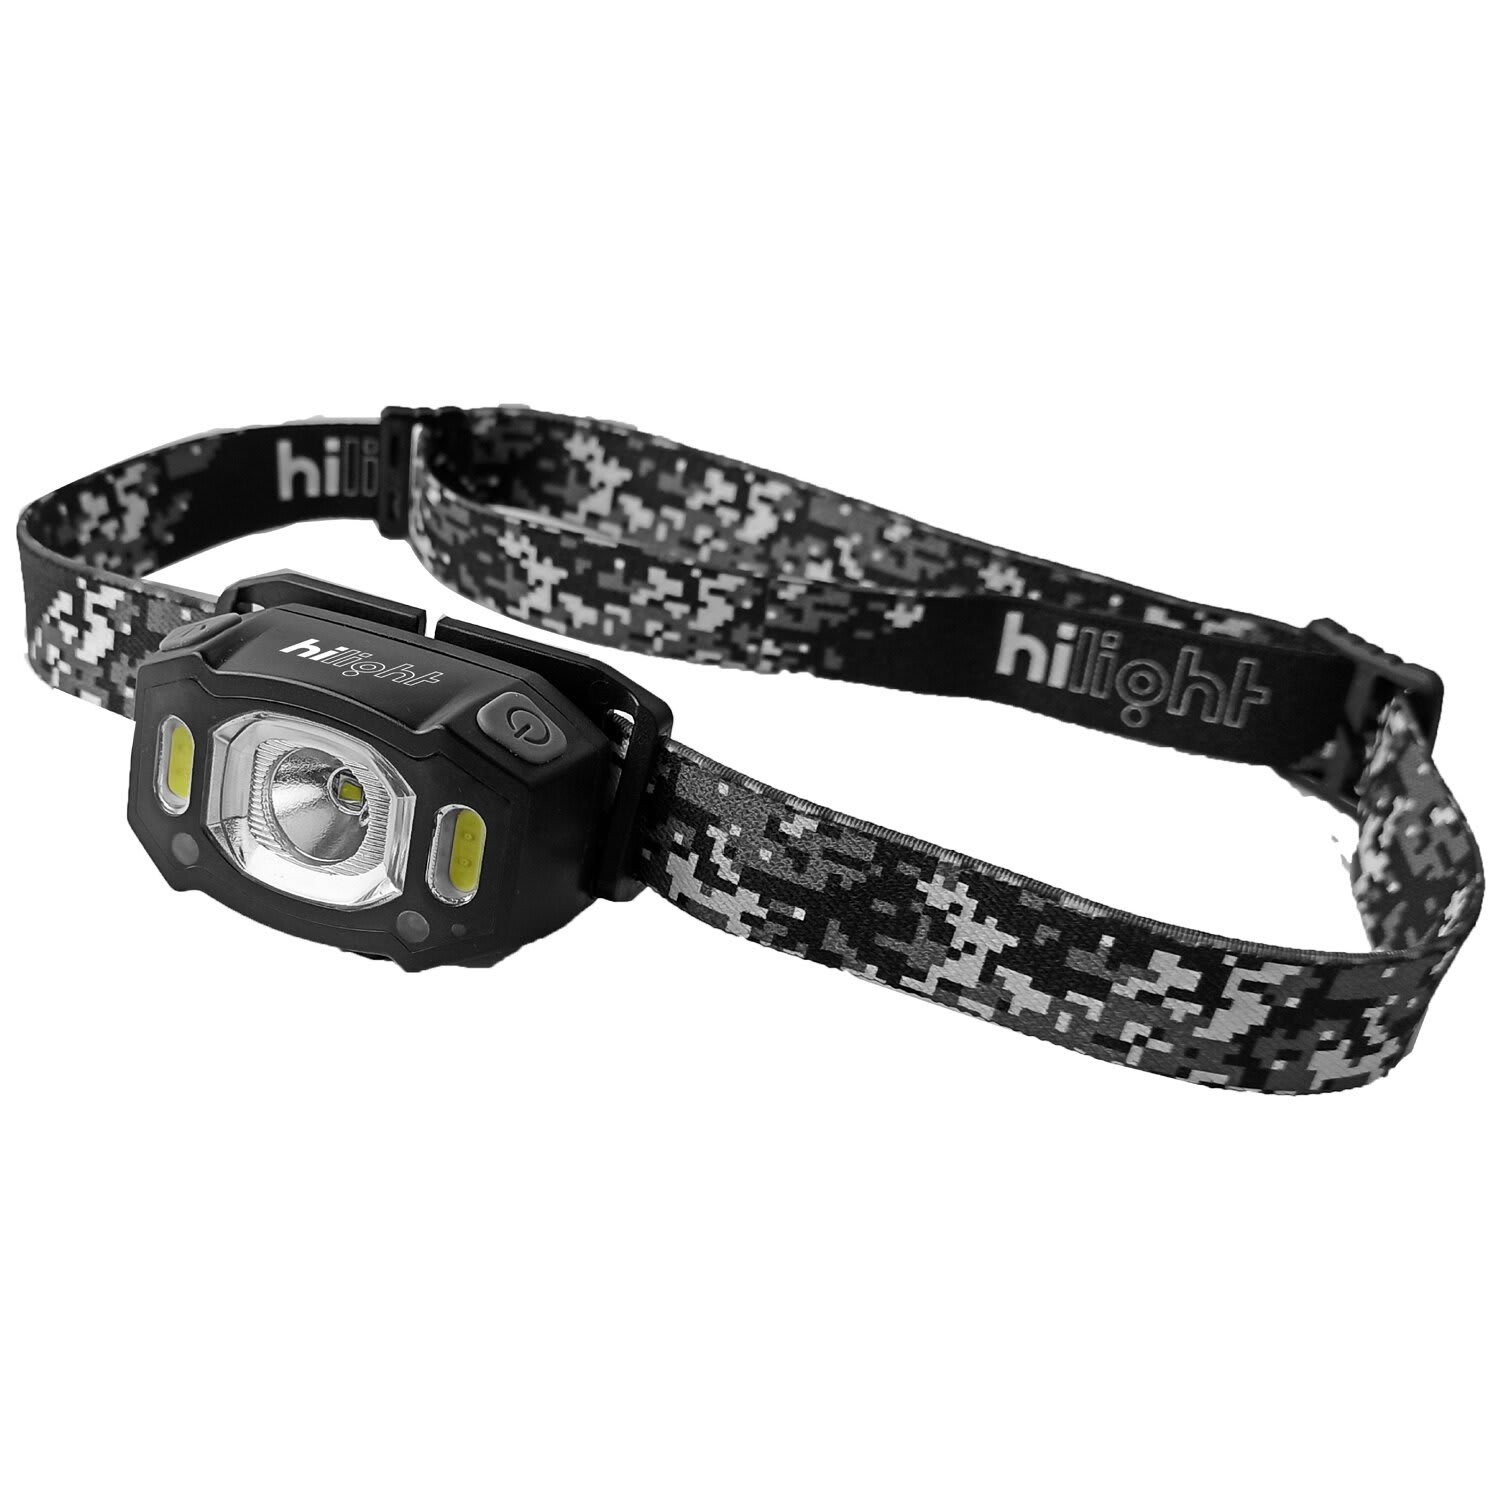 Hilight Sensor 250 Rechargeable Headlamp